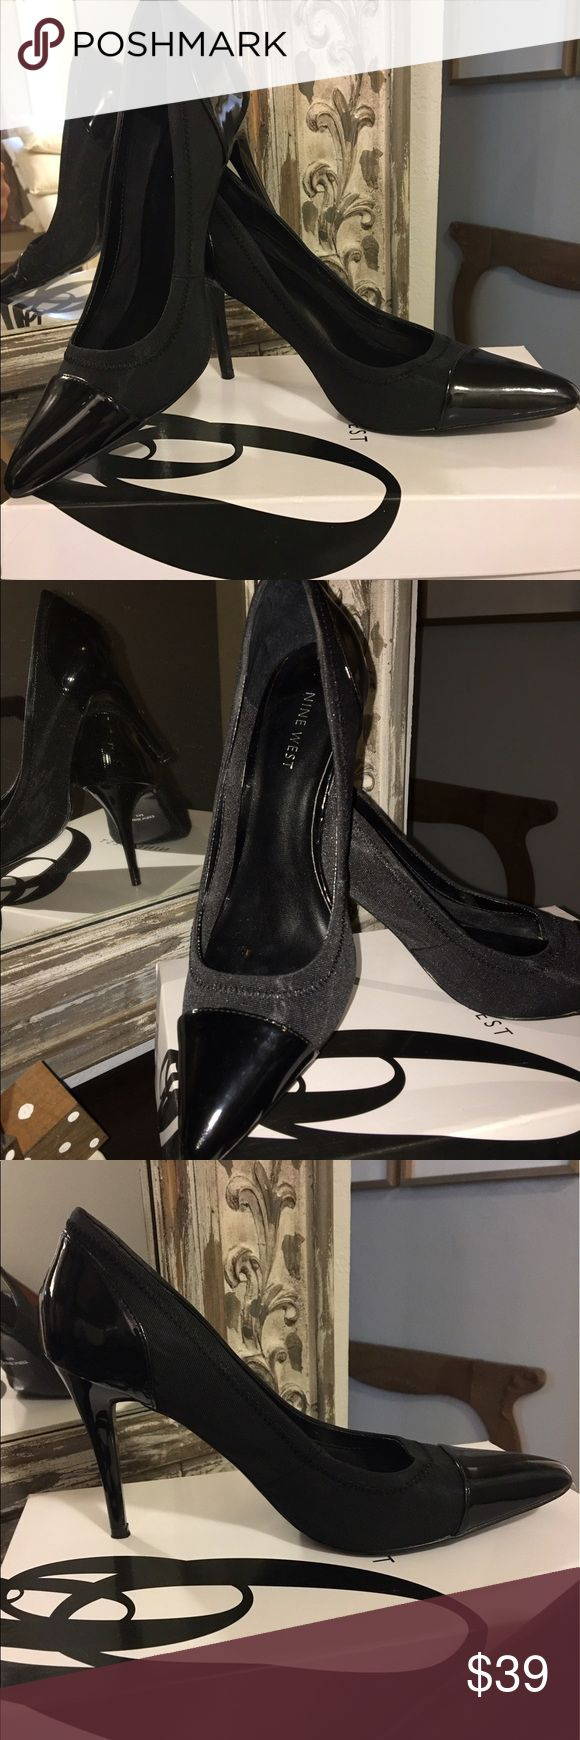 Nine West Patent Leather & nylon black heels 8M Nine West patent leather and nylon heels size 8 medium. Worn once or twice. Just GORGEOUS!!!! 🖤👠 Nine West Shoes Heels